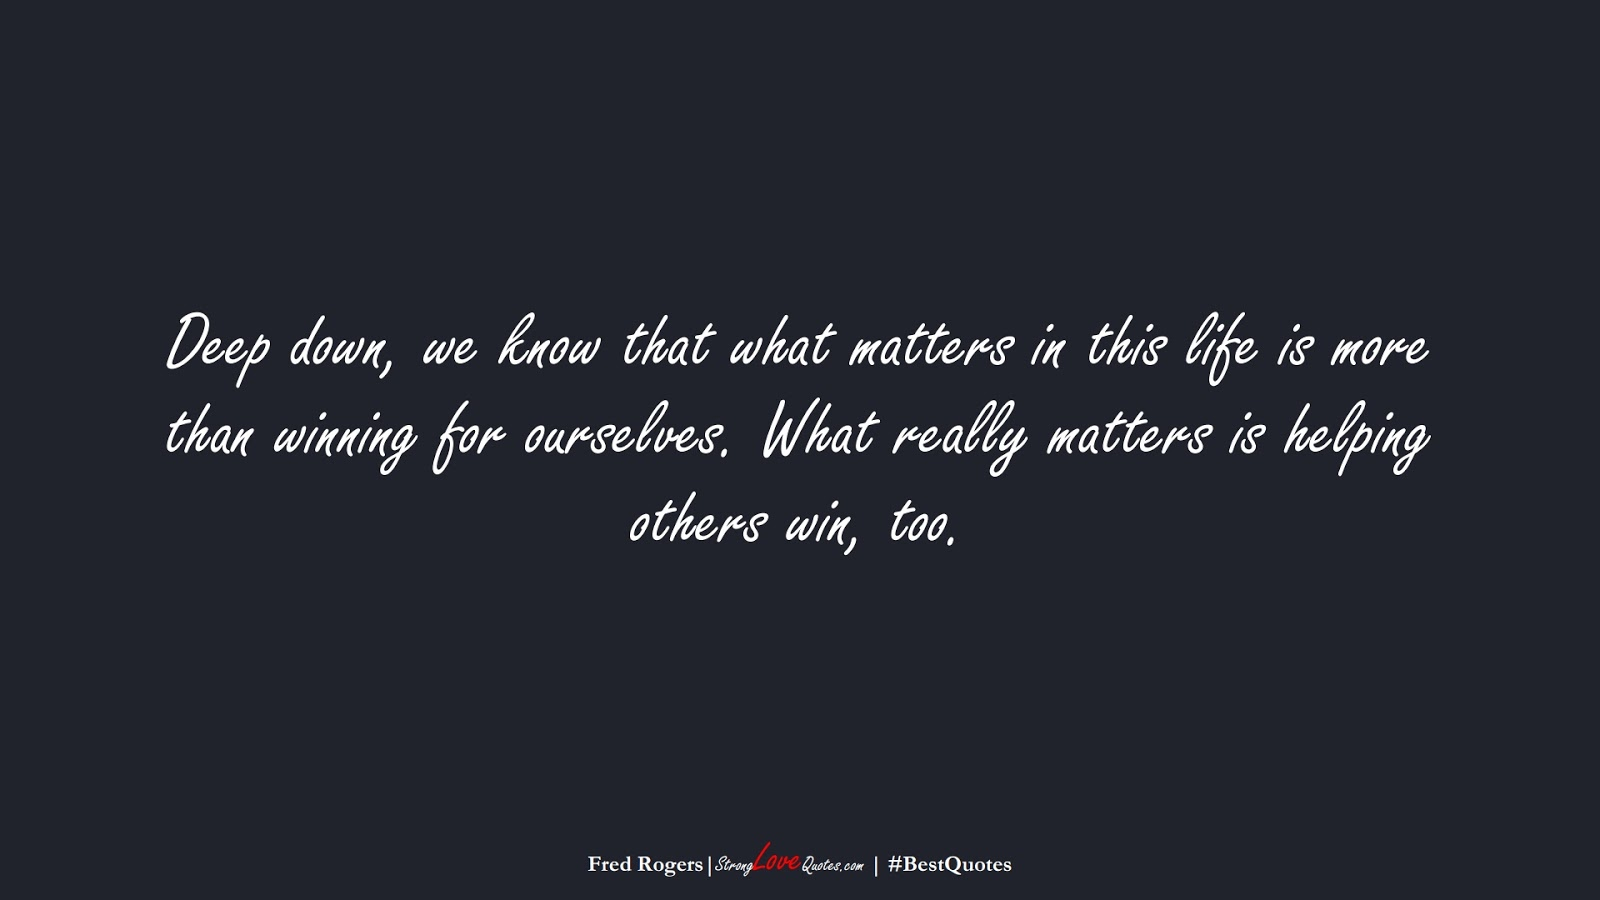 Deep down, we know that what matters in this life is more than winning for ourselves. What really matters is helping others win, too. (Fred Rogers);  #BestQuotes